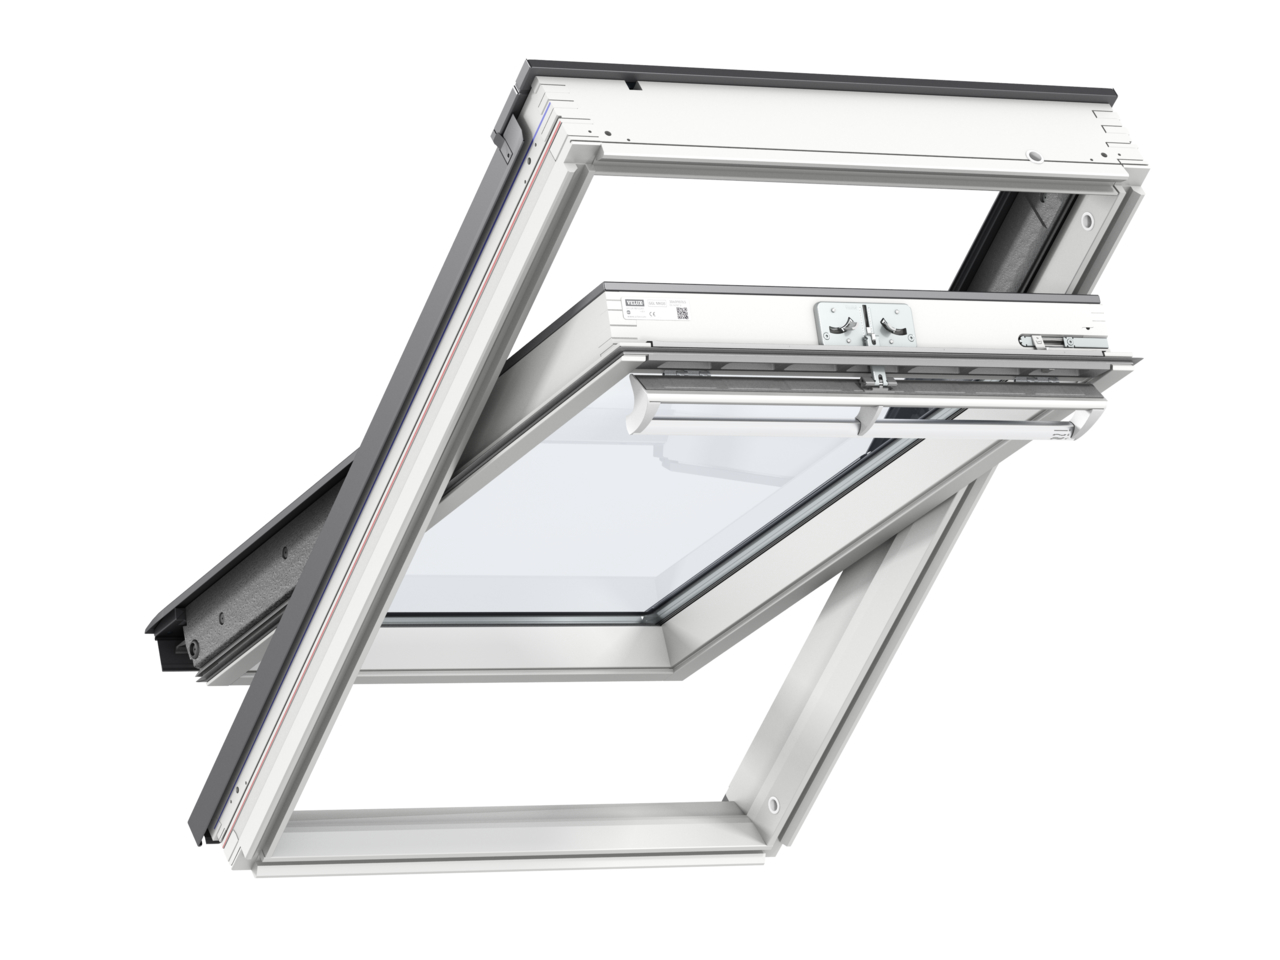 Velux GGL PK08 940 x 1400mm Centre Pivot 66 Pane Roof Window - White Painted